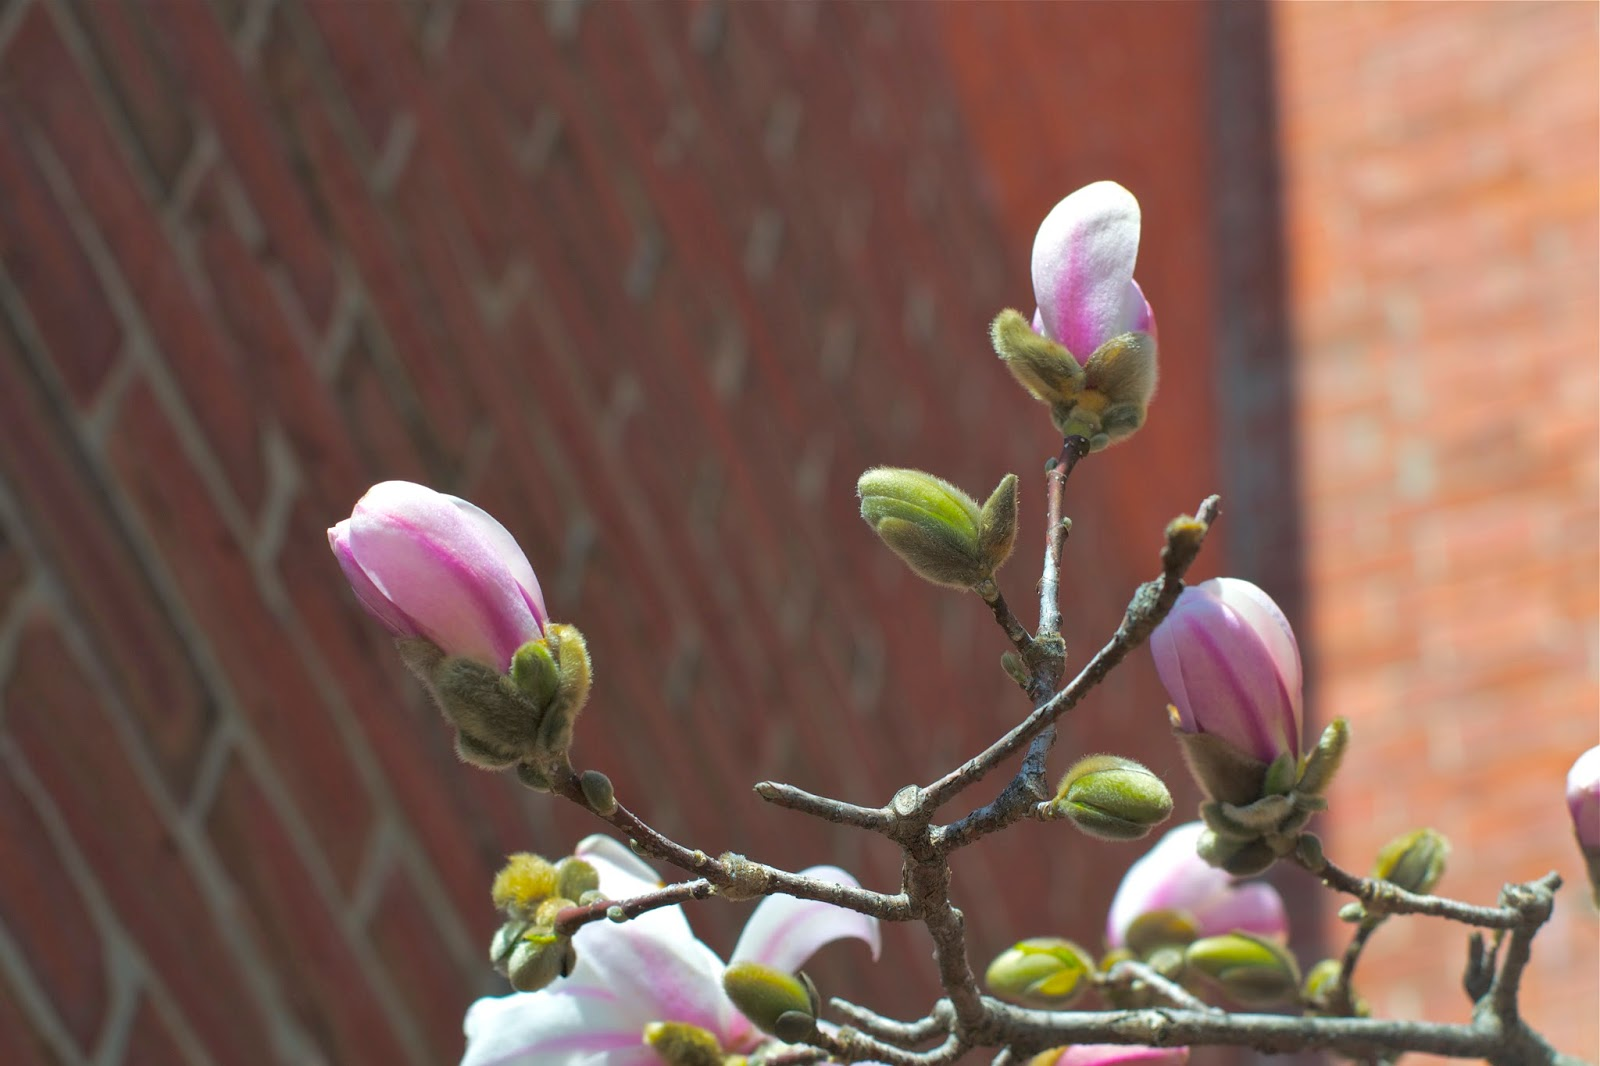 Close up of Magnolia buds starting to bloom.